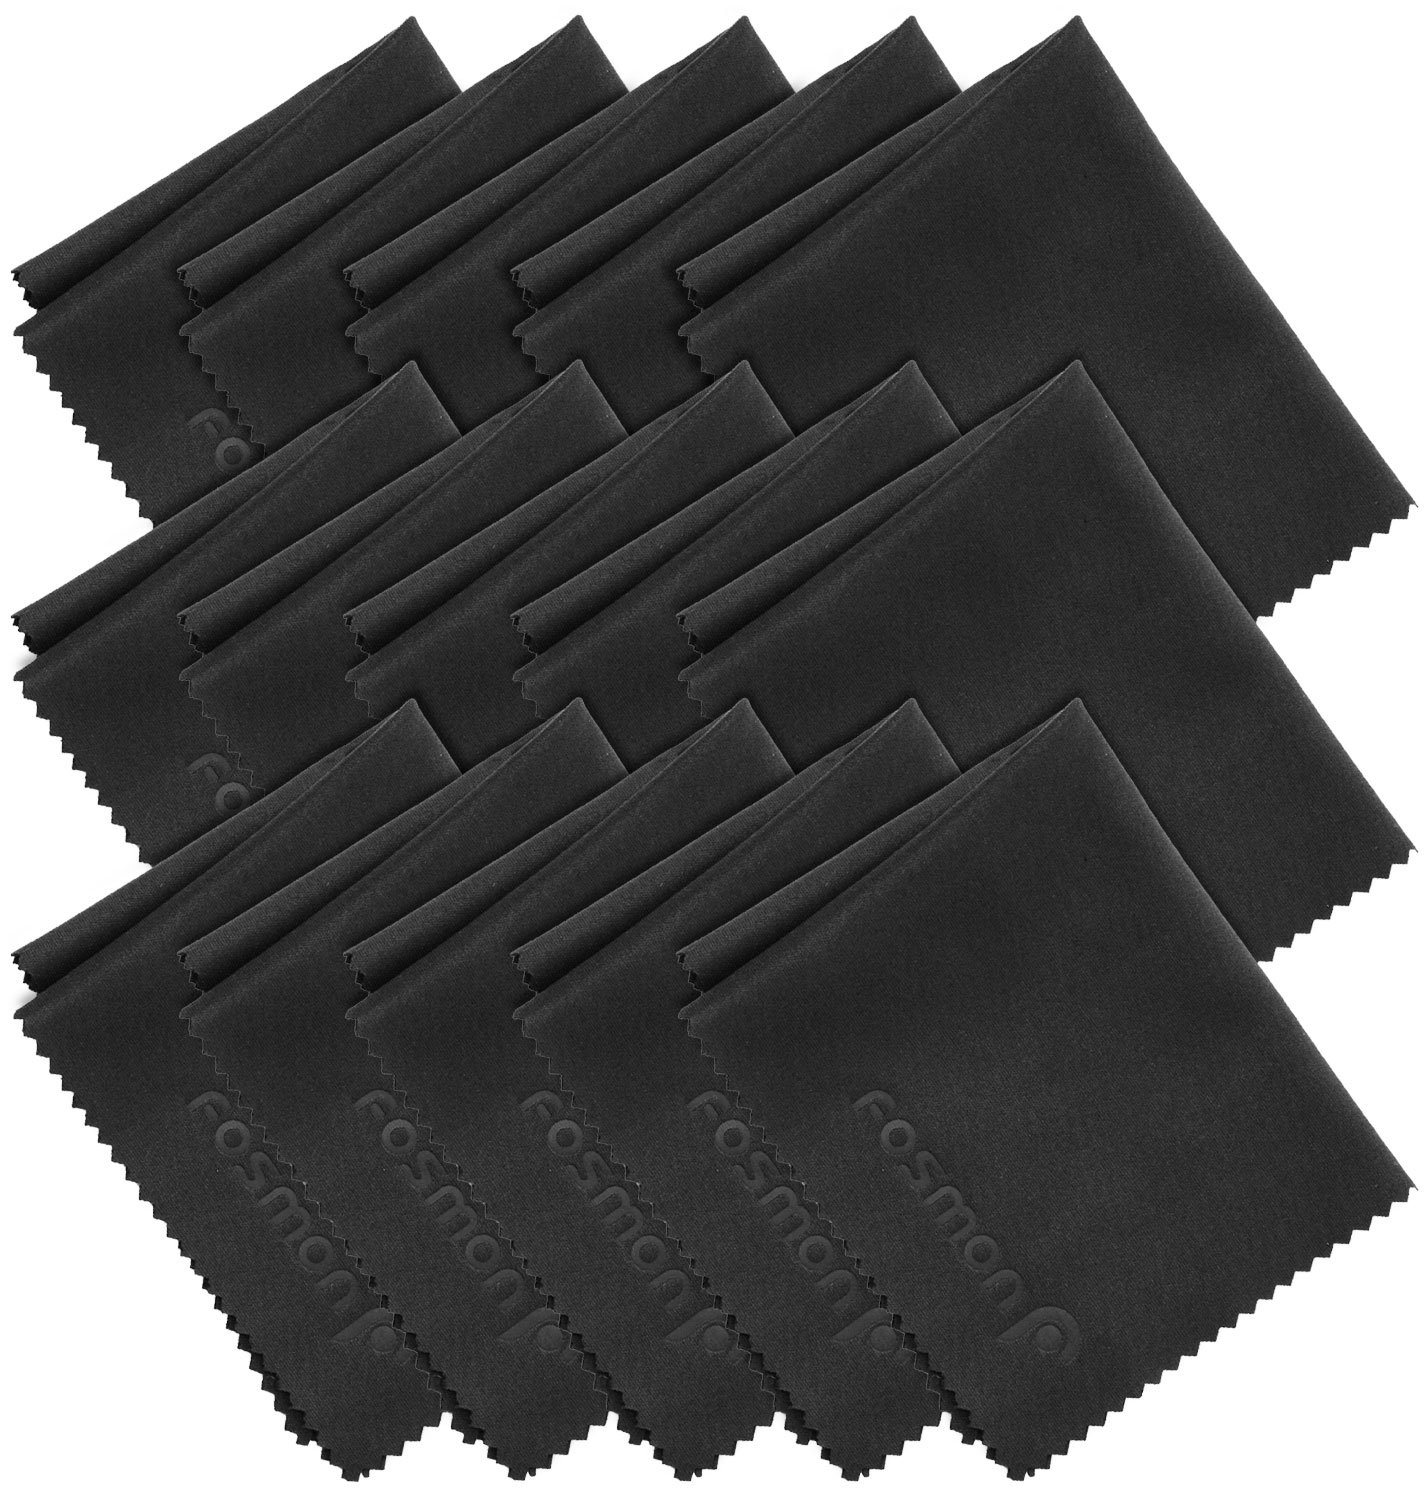 Microfiber Cleaning Cloths, Fosmon 15-Pack of Microfiber Cleaning Cloths [6 x 7 inches / 15.2 x 17.8 cm] (Black) A1743